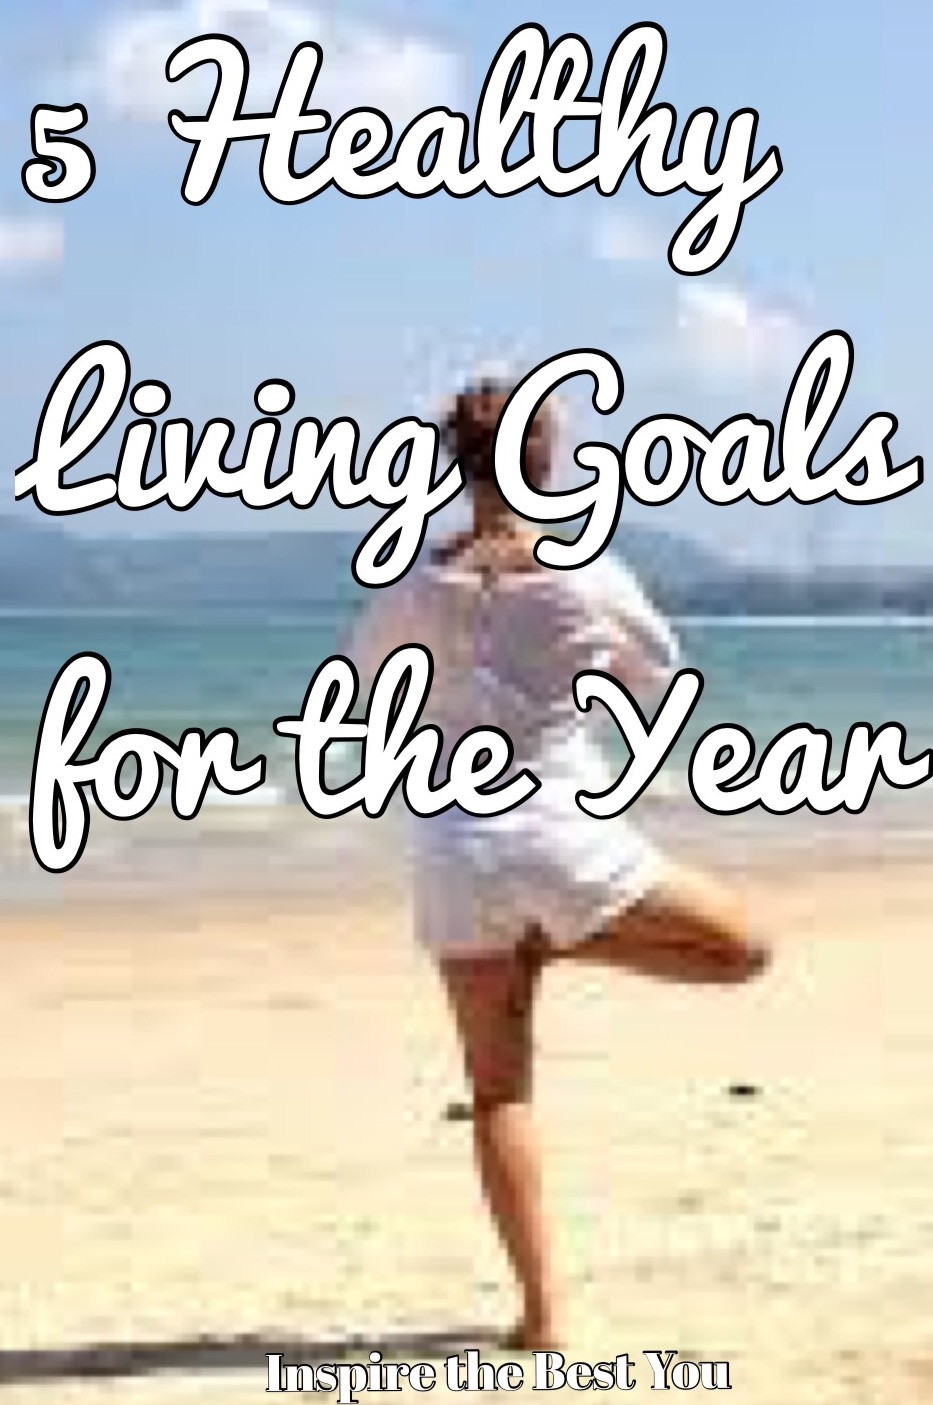 5 Healthy Living Goals for the Year